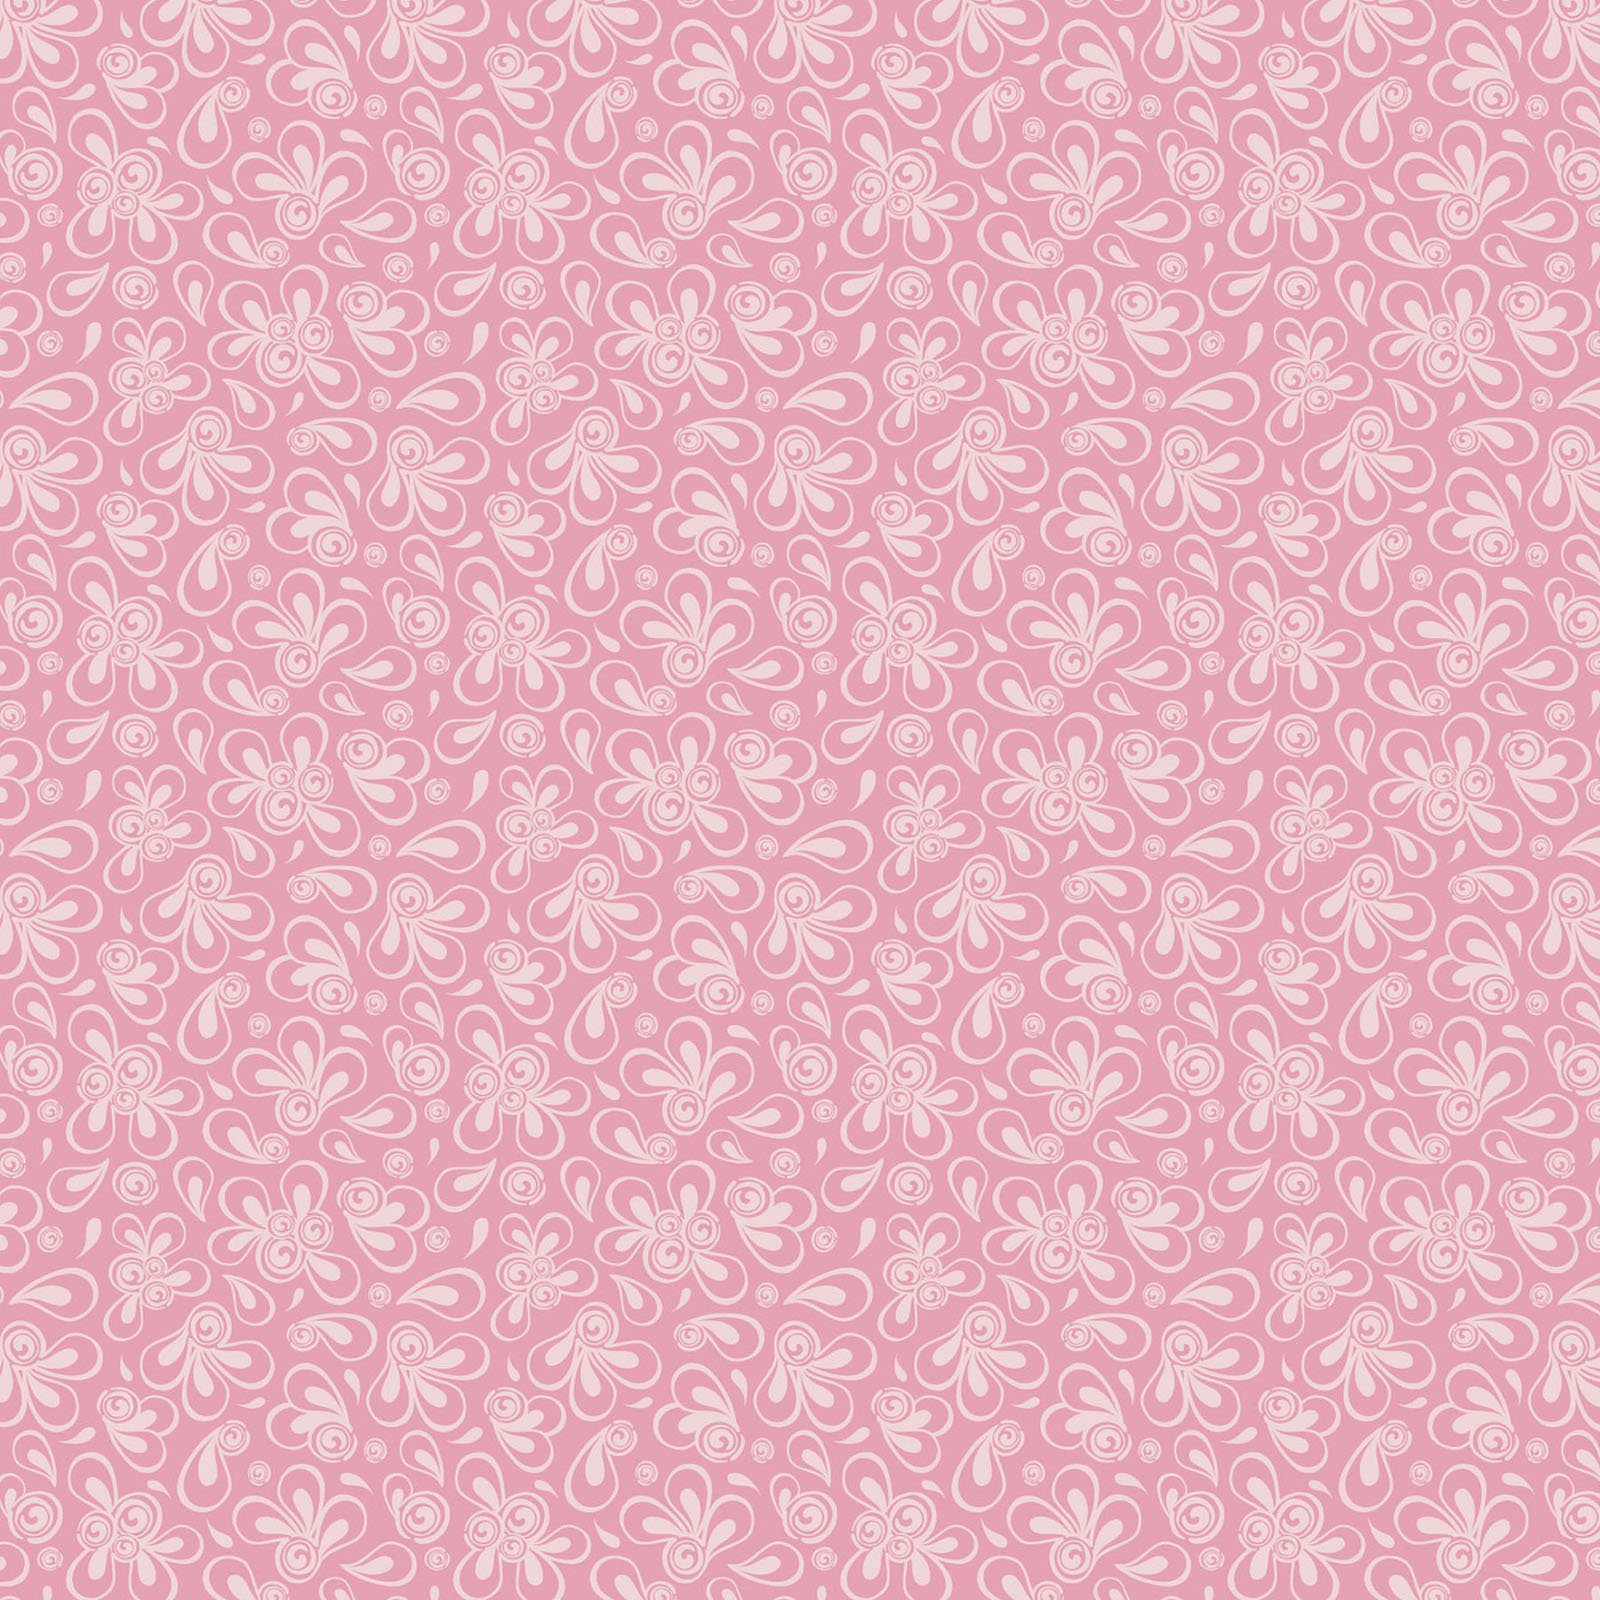 WHIM-4410 P - WHIMSY BY HANG TIGHT STUDIO MOD SWOOP PINK